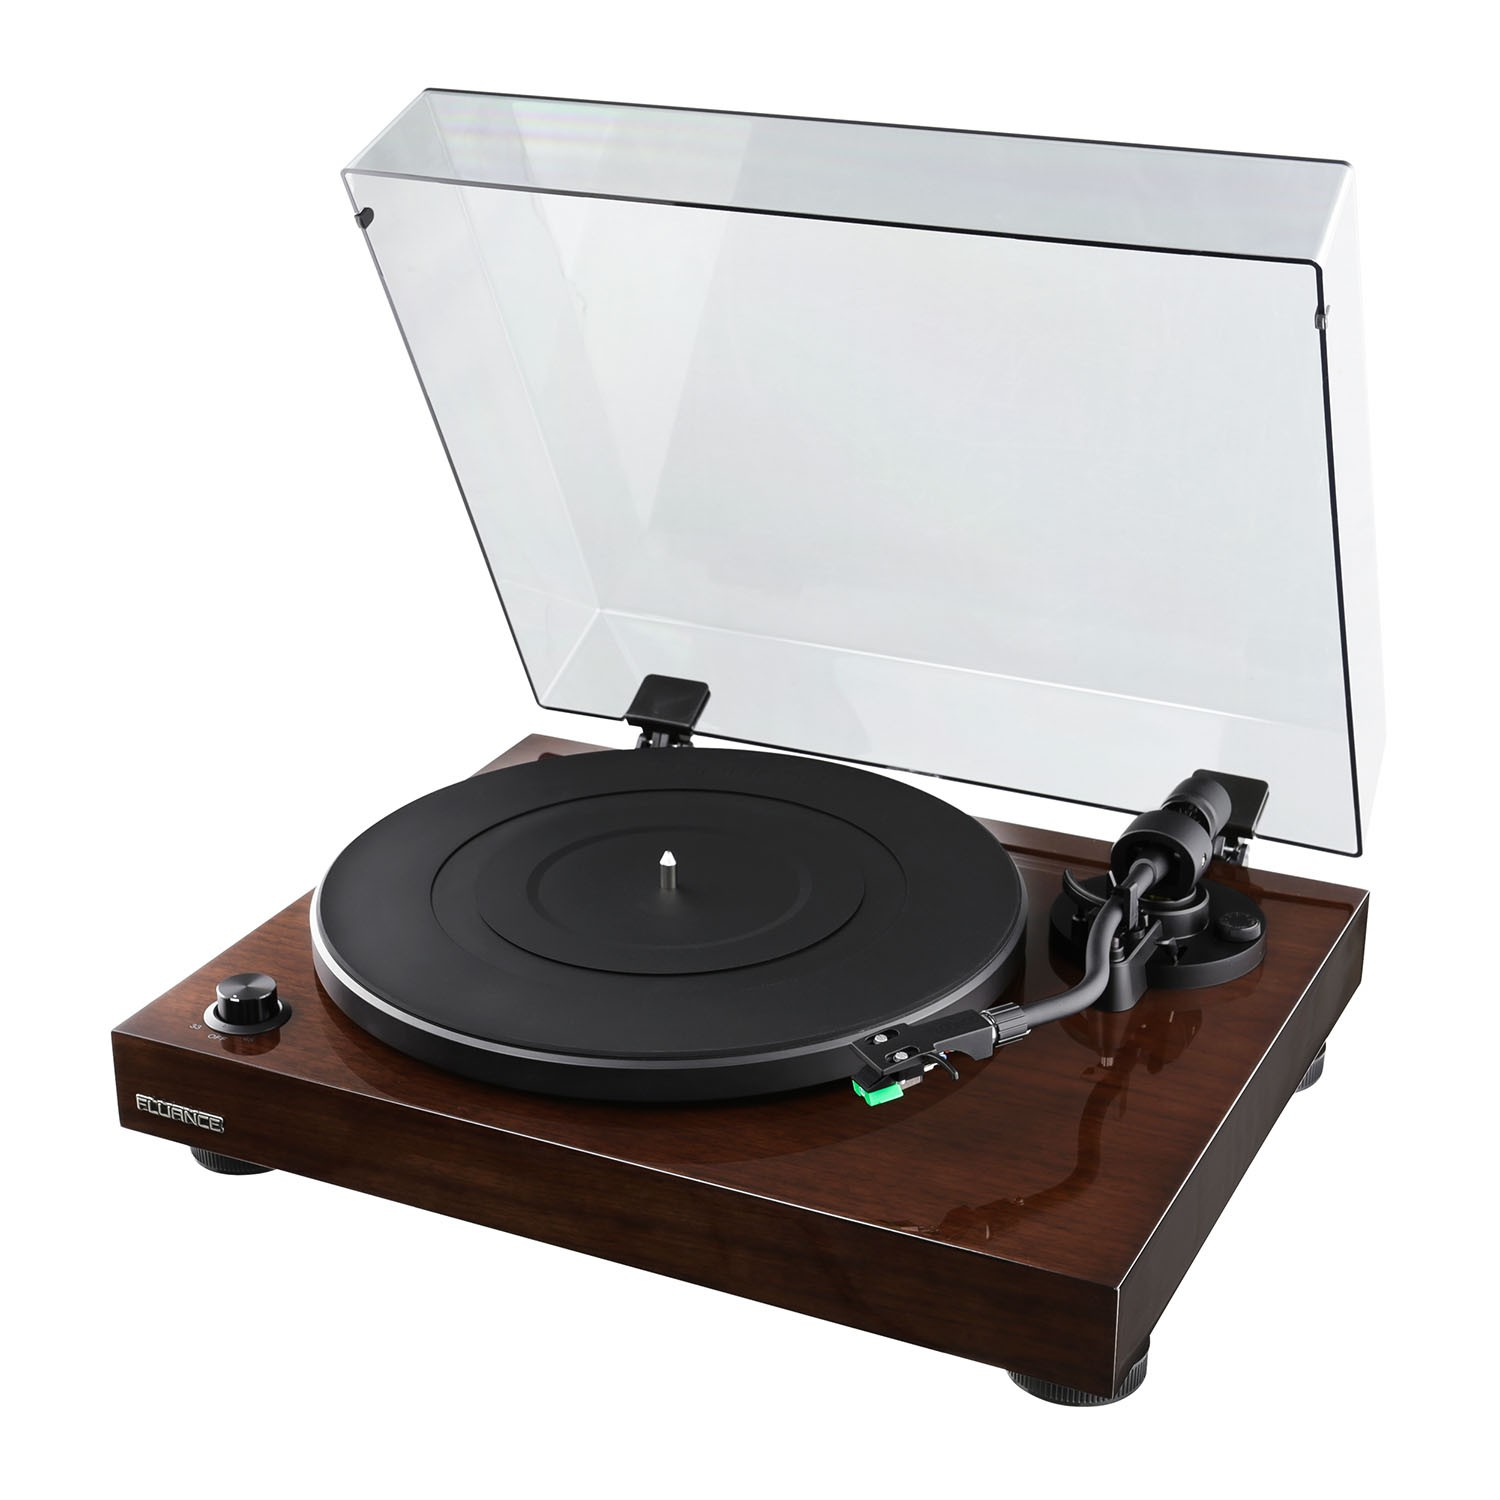 Fluance RT81 Vinyl Turntable Record Player Main